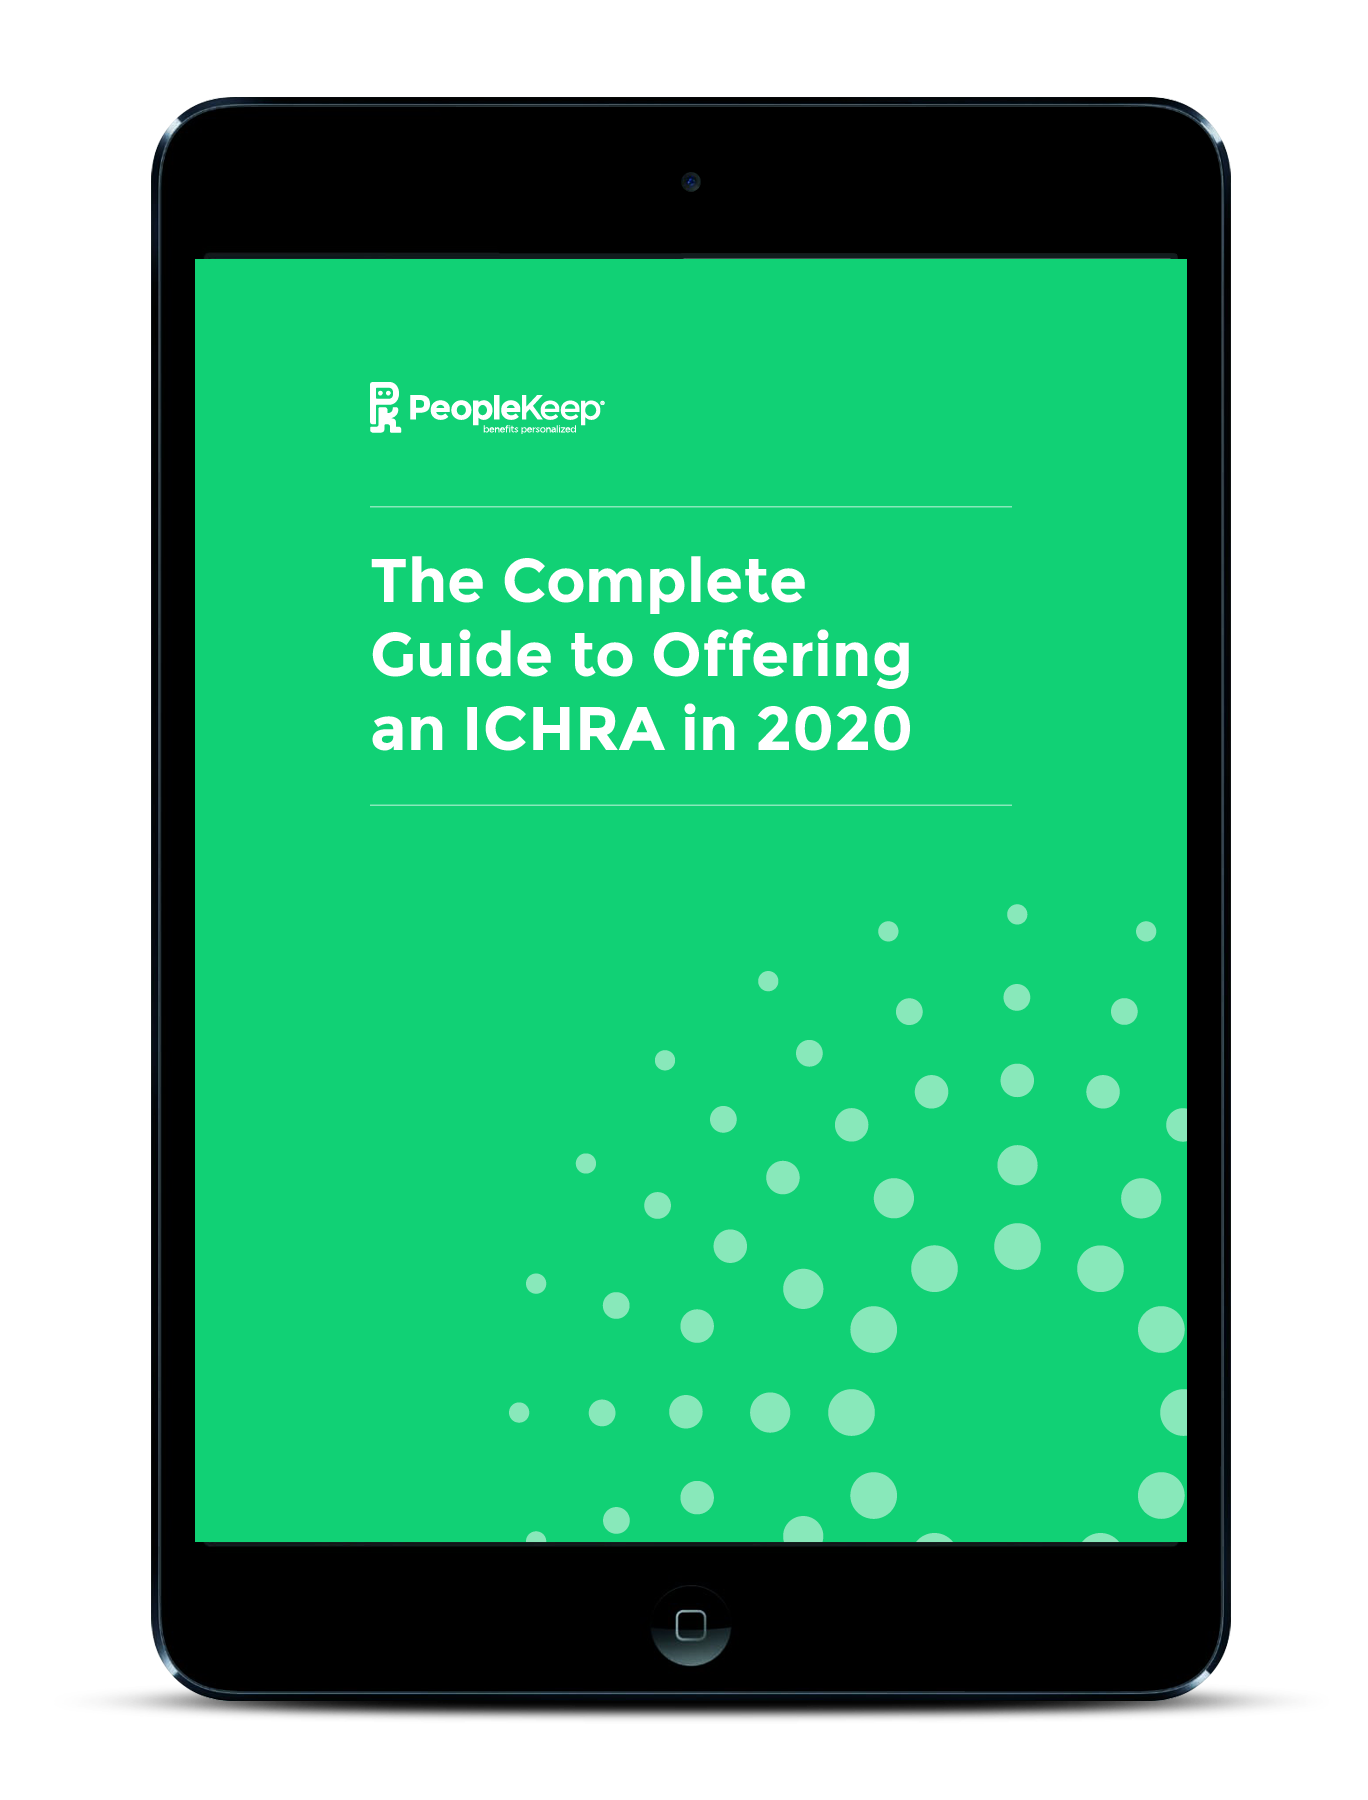 The Complete Guide to Offering the ICHRA in 2020